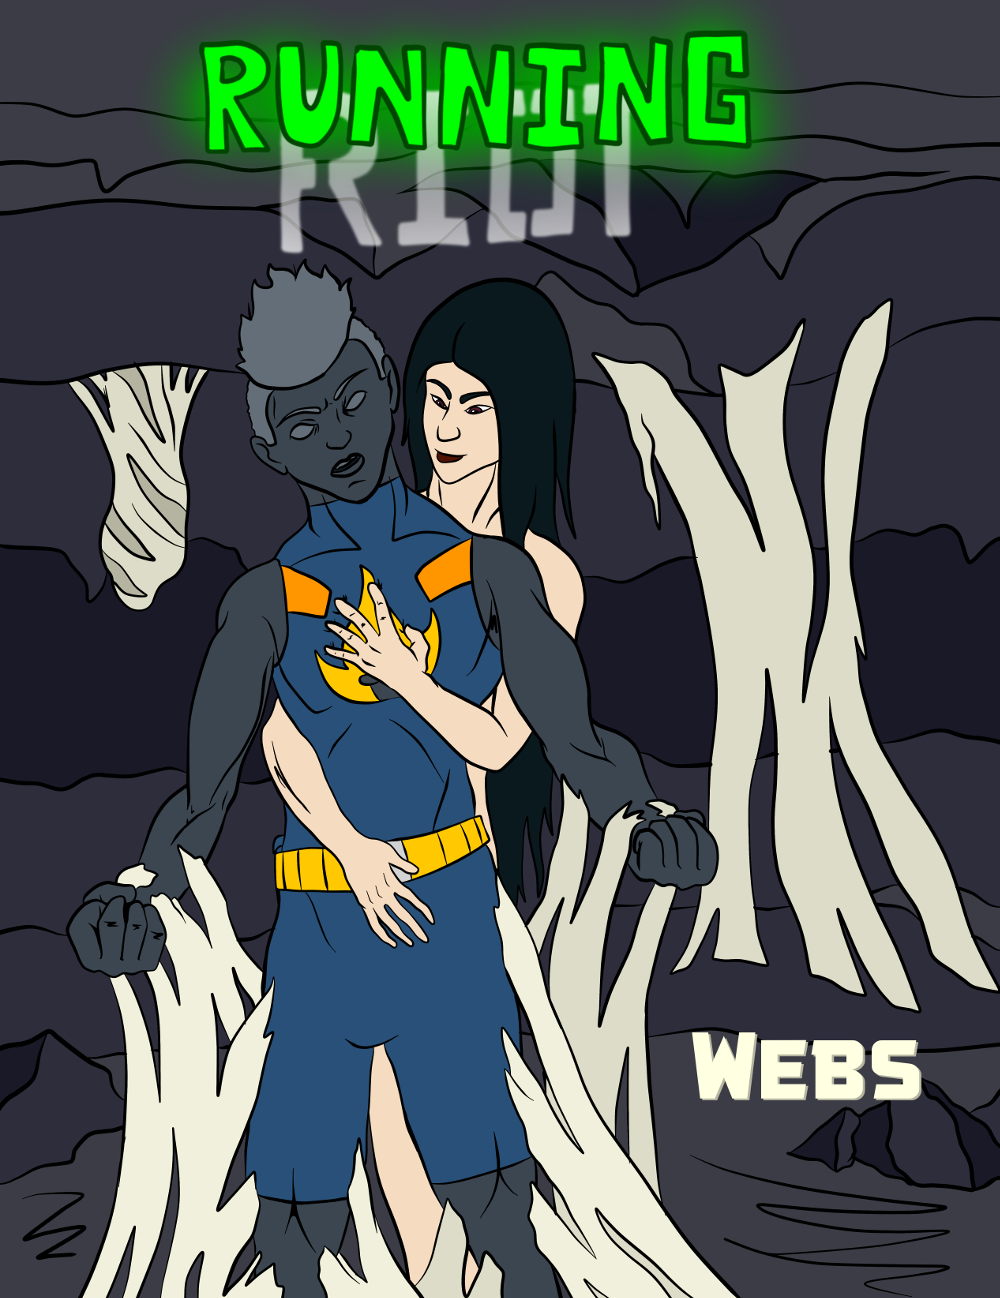 Chapter 8: Webs